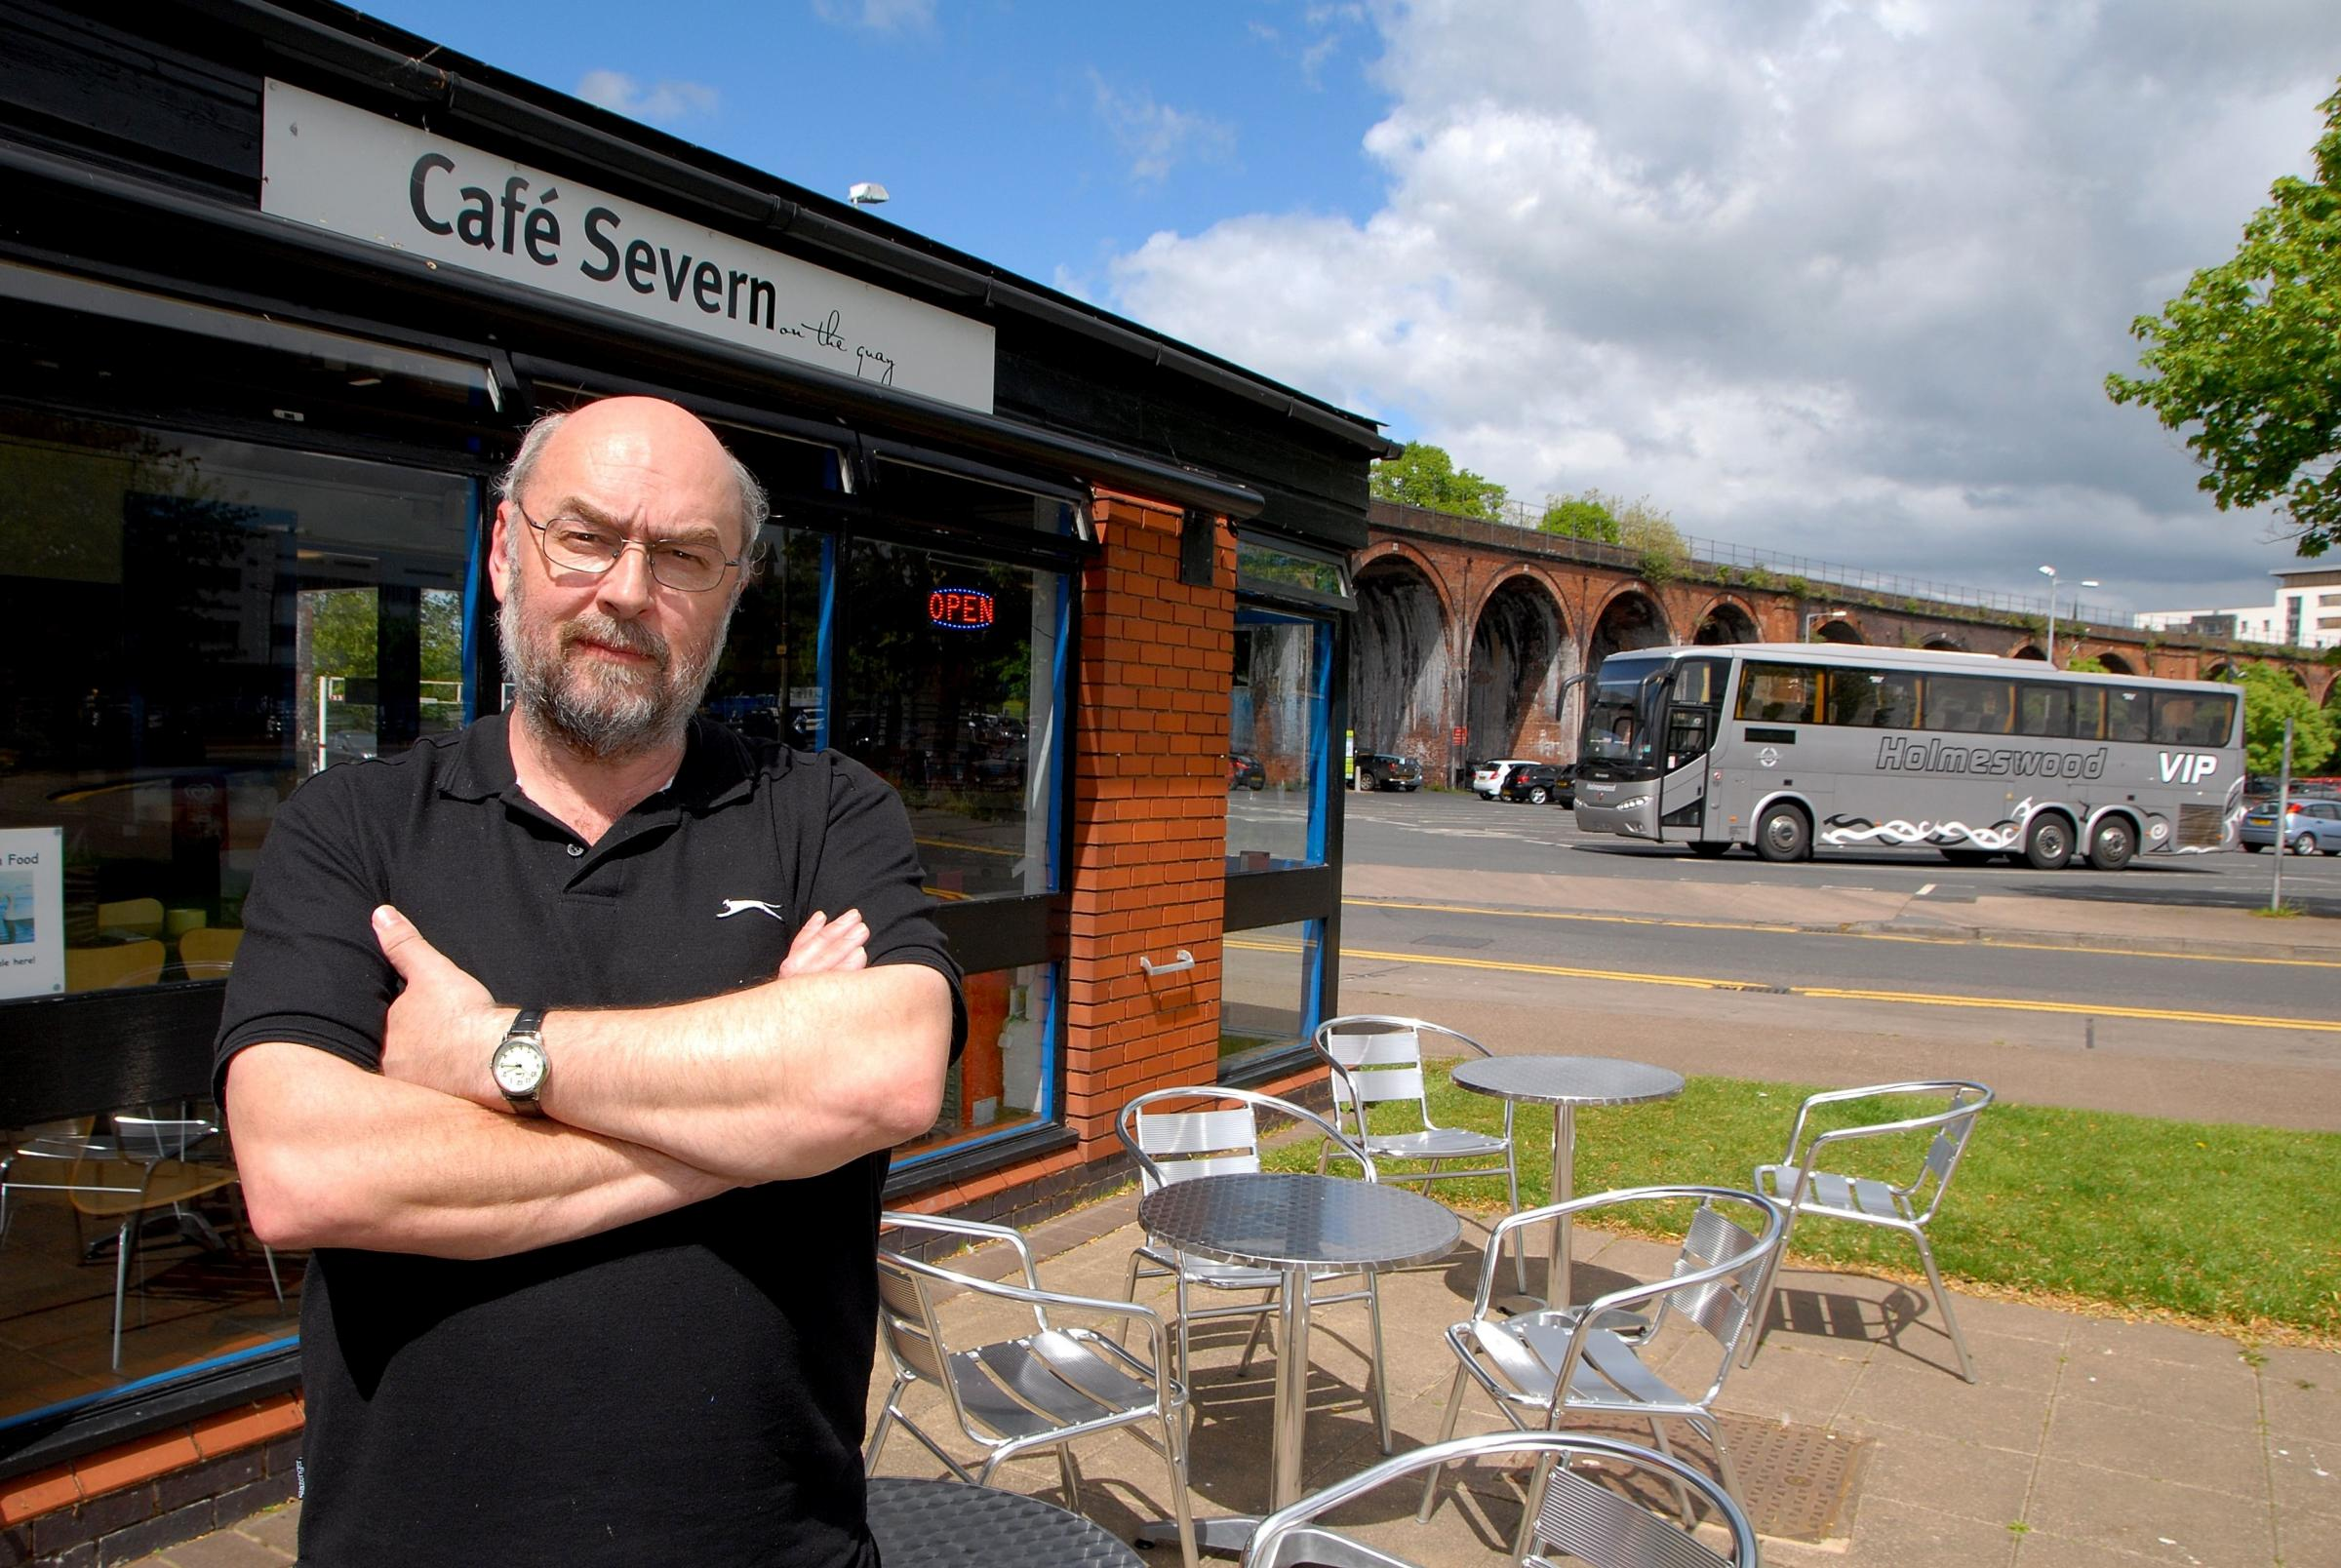 Chris Wise, who runs Cafe Severn on the Quay